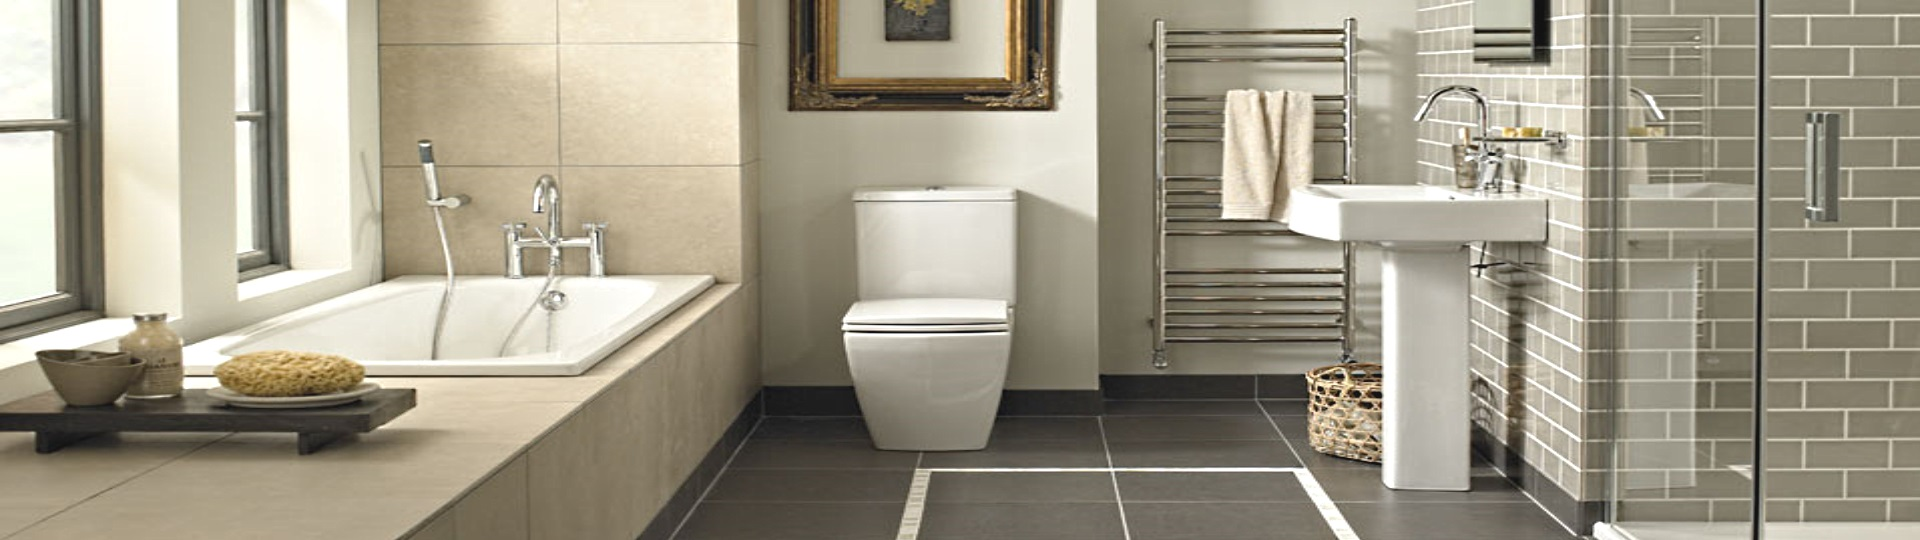 Bathroom Installation Bristol, Bristol Bathroom Installers